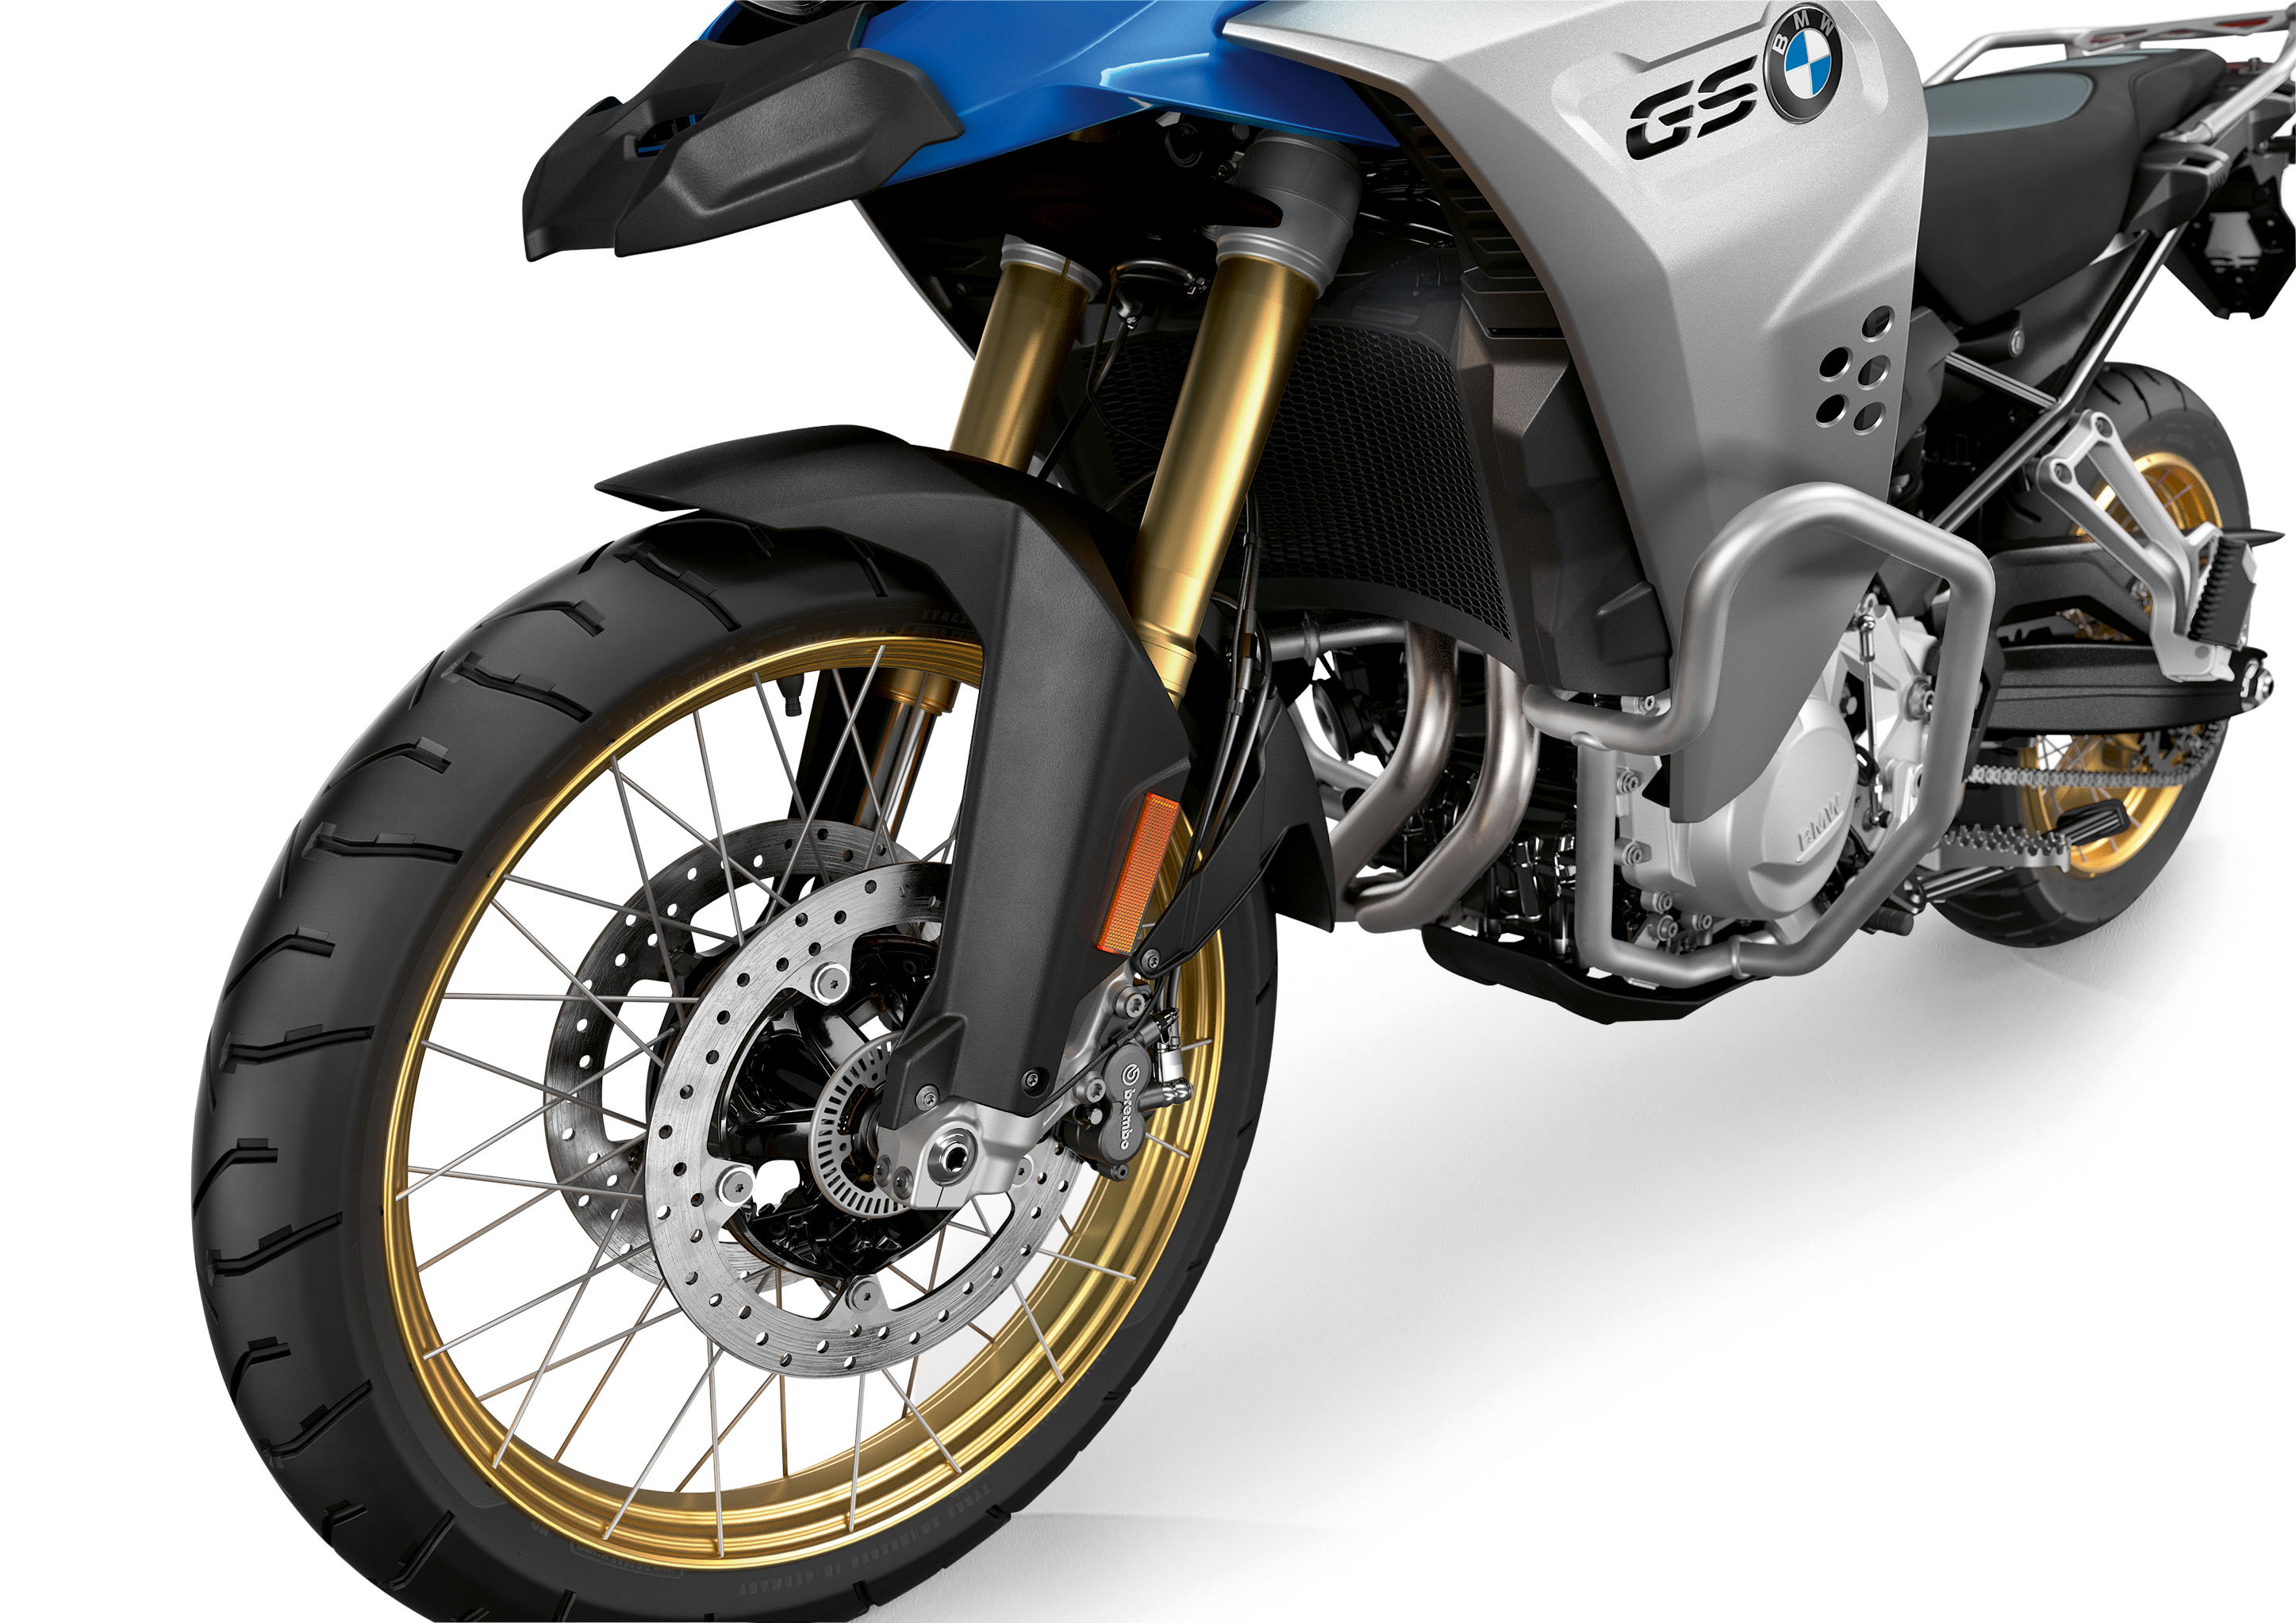 2019 BMW F850GS Adventure First Look - Motorcycle.com